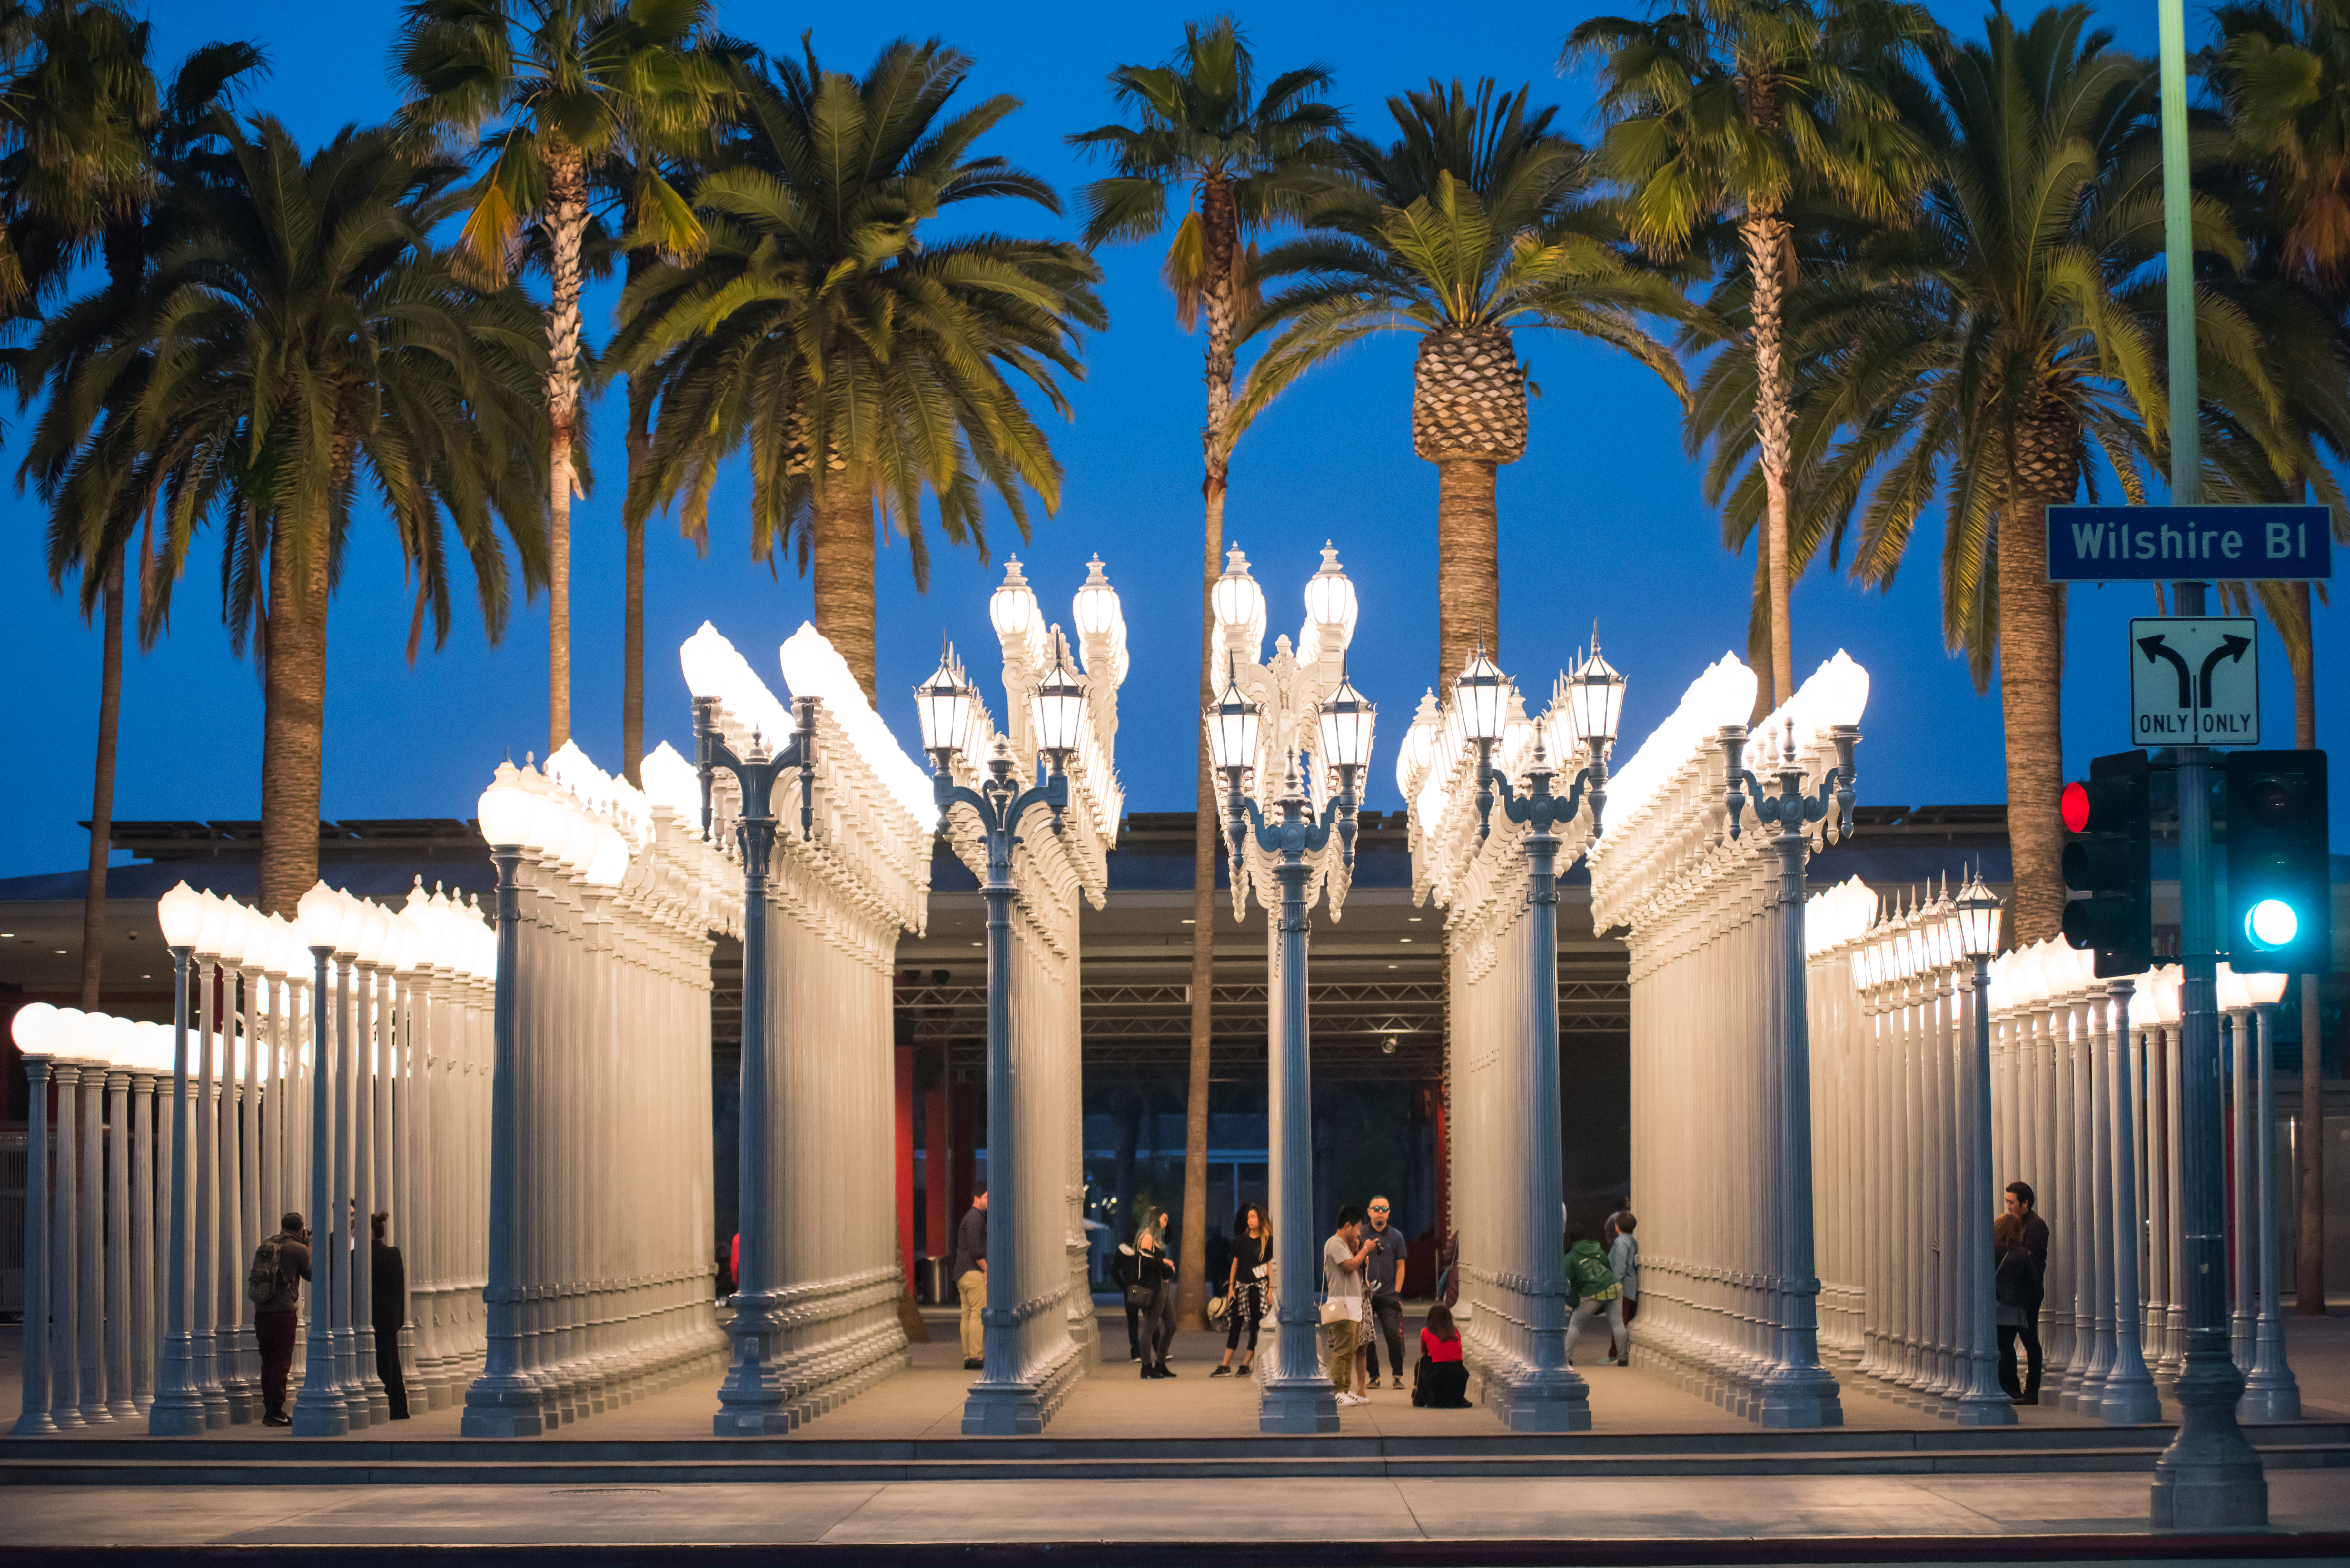 Urban Light is made up of 202 old lampposts, many of them from the 1920s and '30s collected from around Los Angeles.